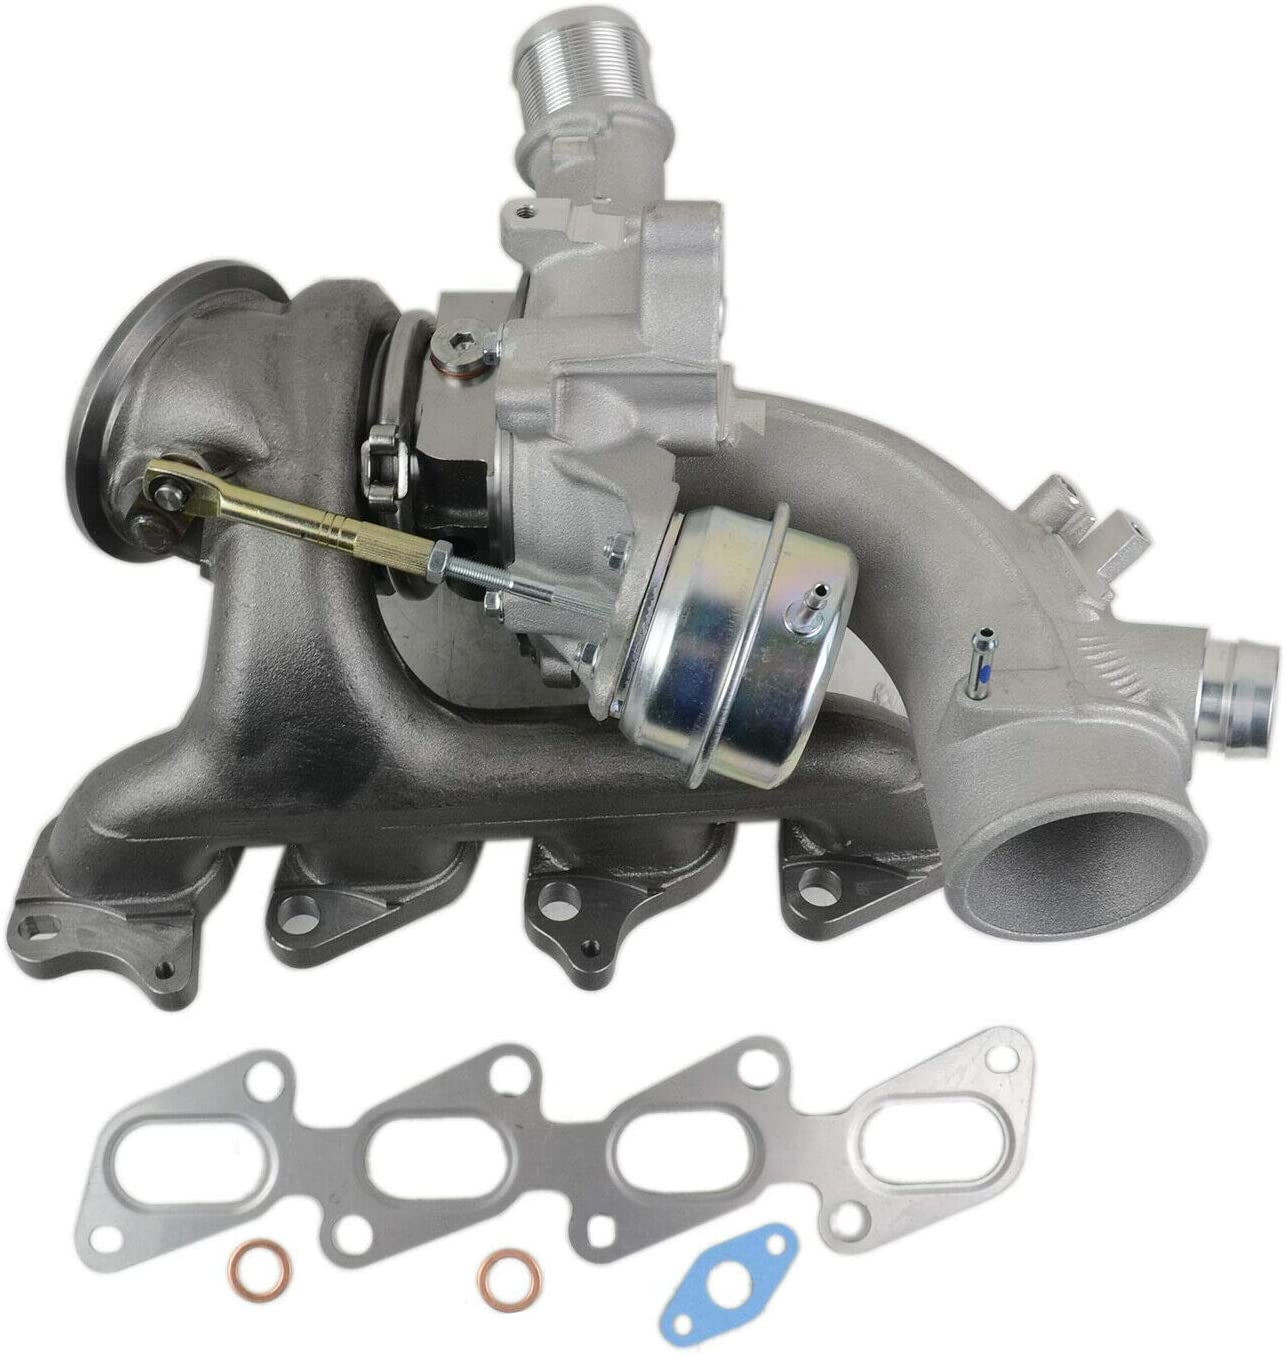 Turbo Charger Compatible with Chevy Cruze Sonic Trax Opel Astra Meriva Buick Encore 1.4L 781504, 781504-5004S, 781504-5001S